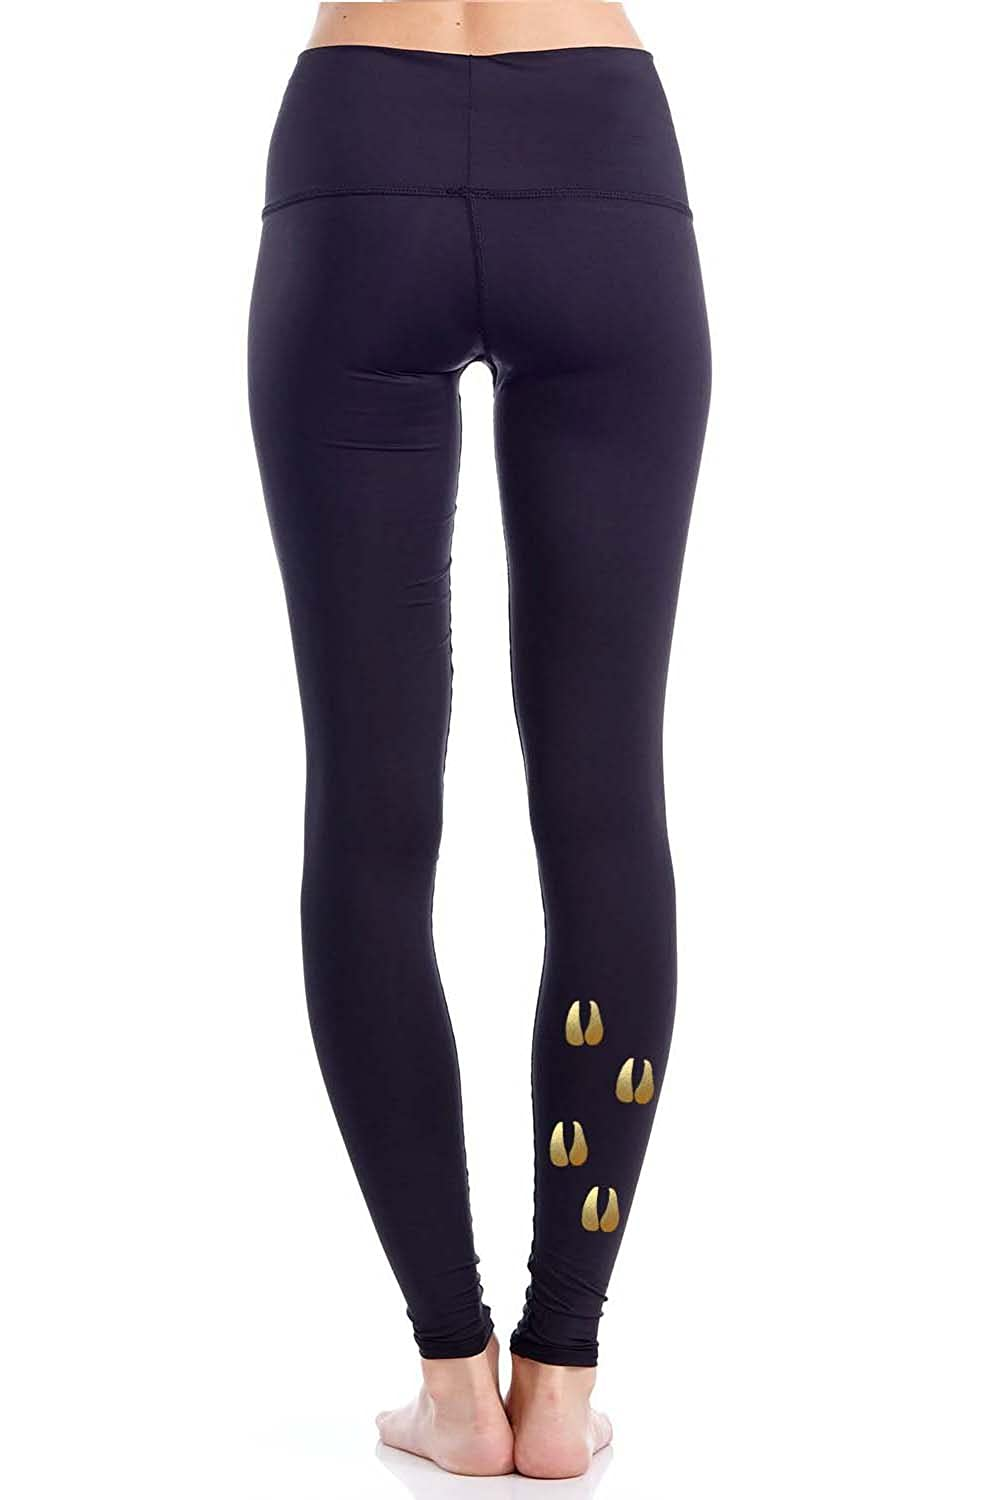 Printed Fitted Stretch Tights M S Yoga Legging Evolve Womens Active Workout Gold Goat XS L